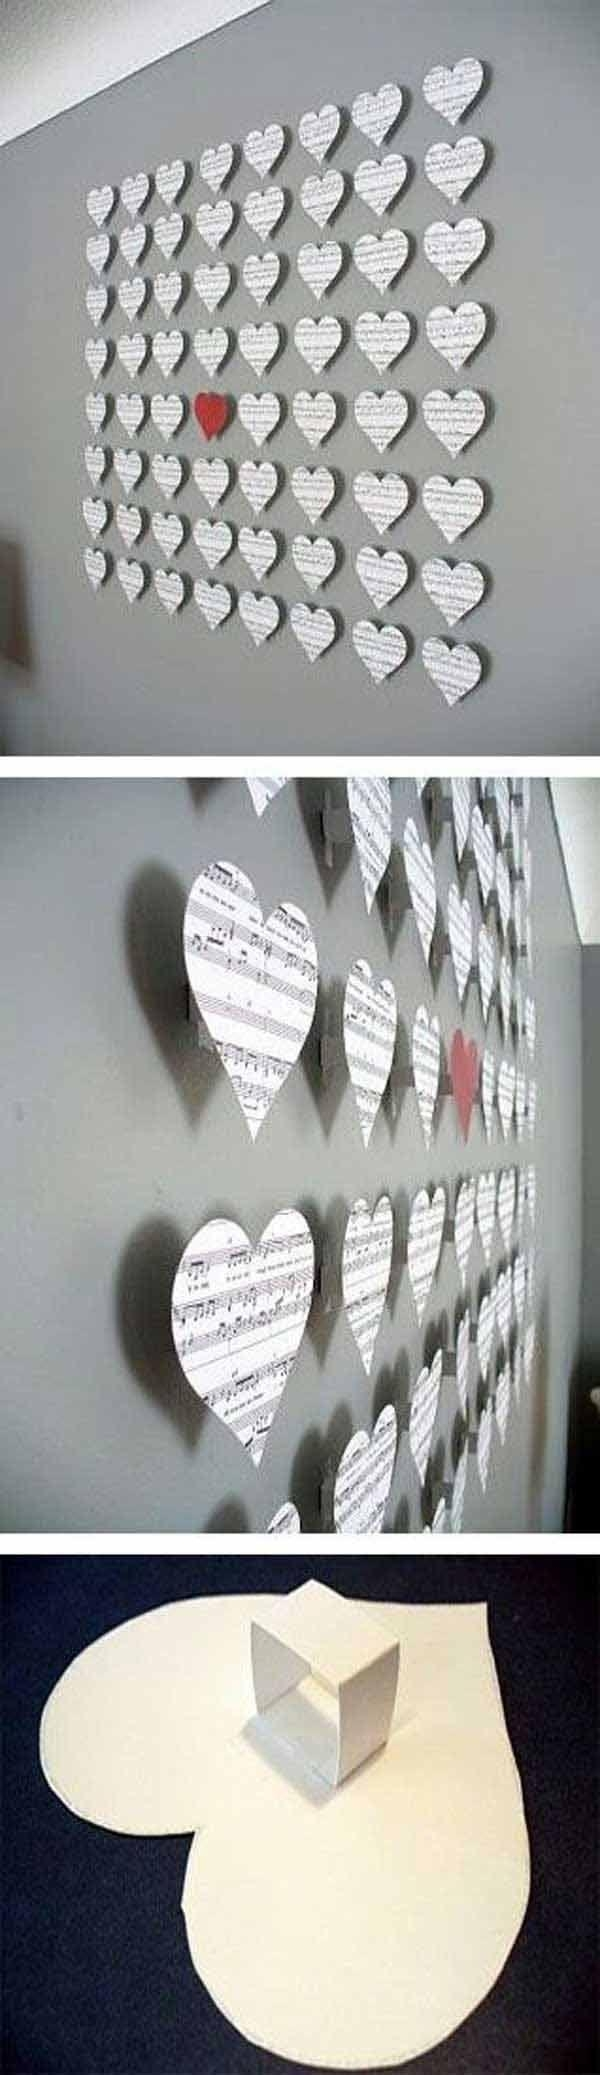 Best 20+ Diy Wall Ideas On Pinterest | Cheap Bedroom Ideas, Cheap For Pinterest Diy Wall Art (Image 9 of 20)